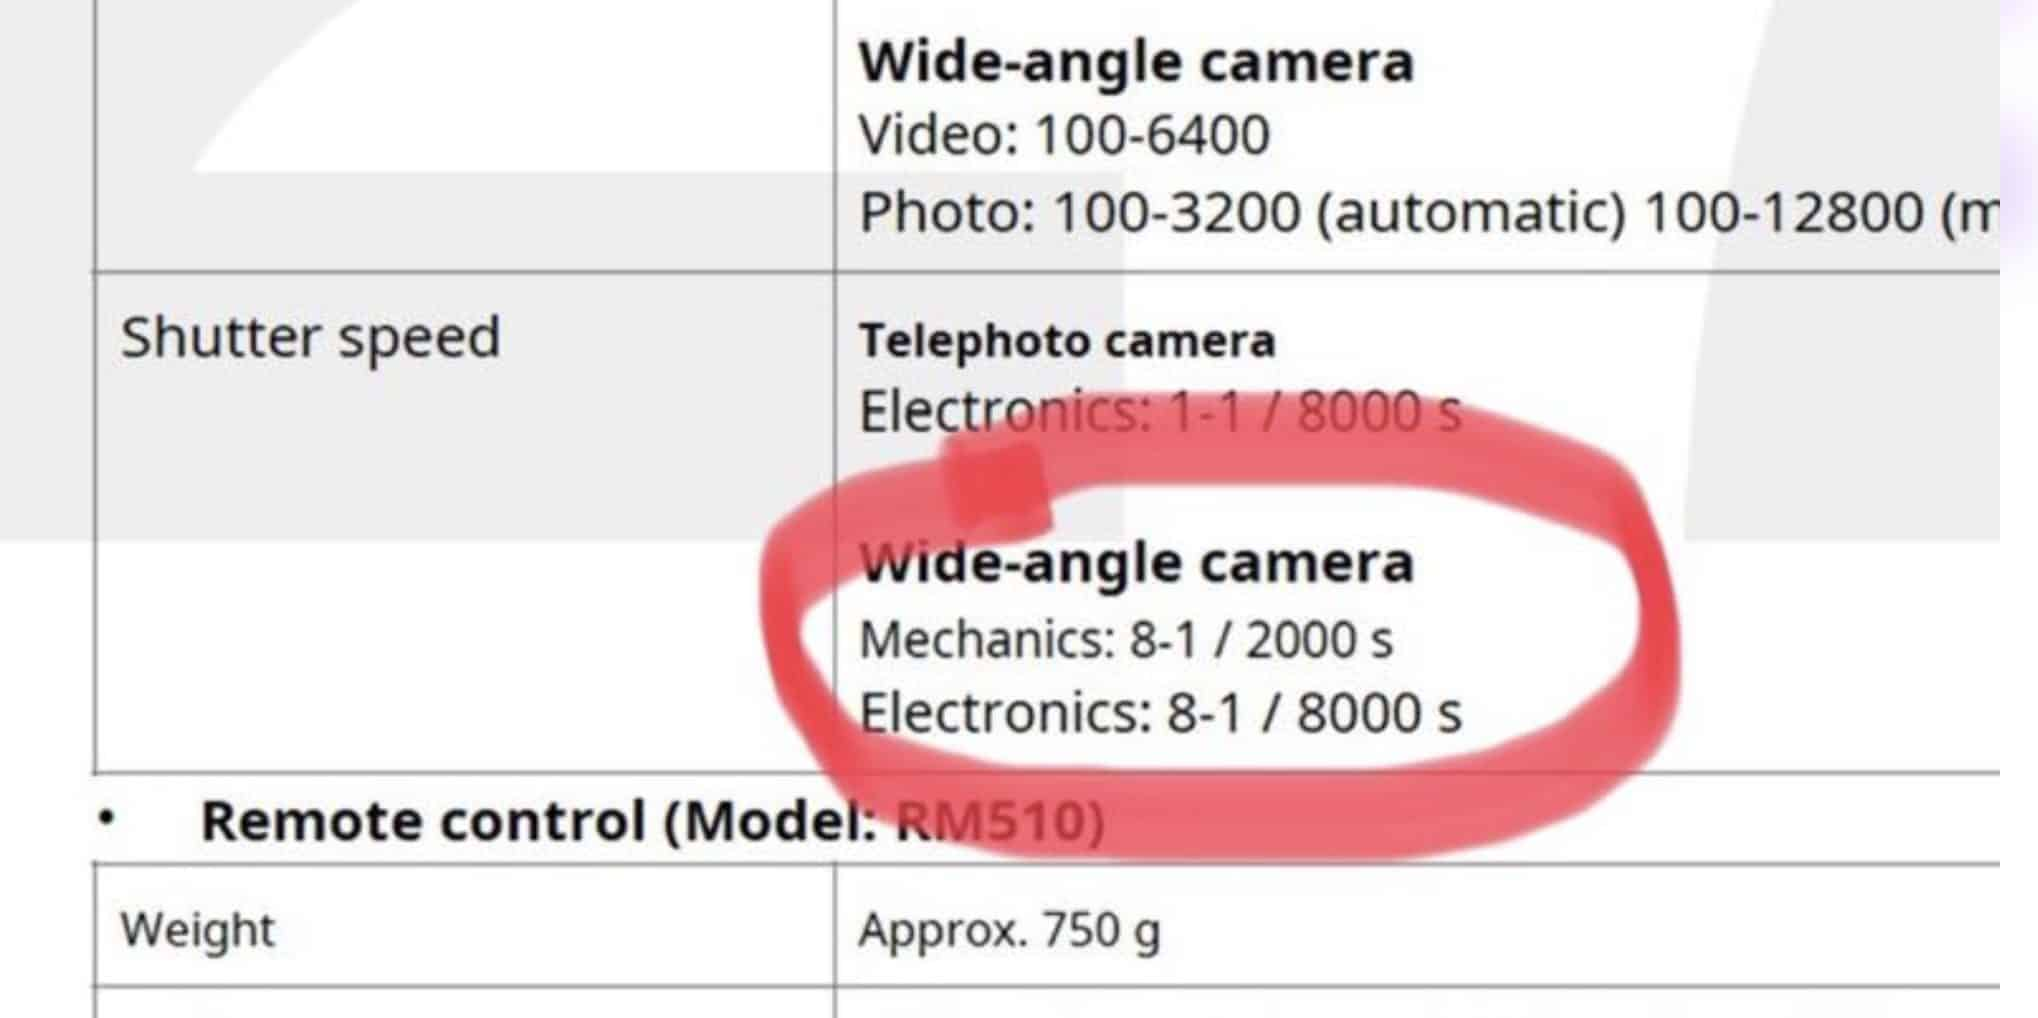 Leaked specs Mavic 3 indicate electronic and mechanical shutter